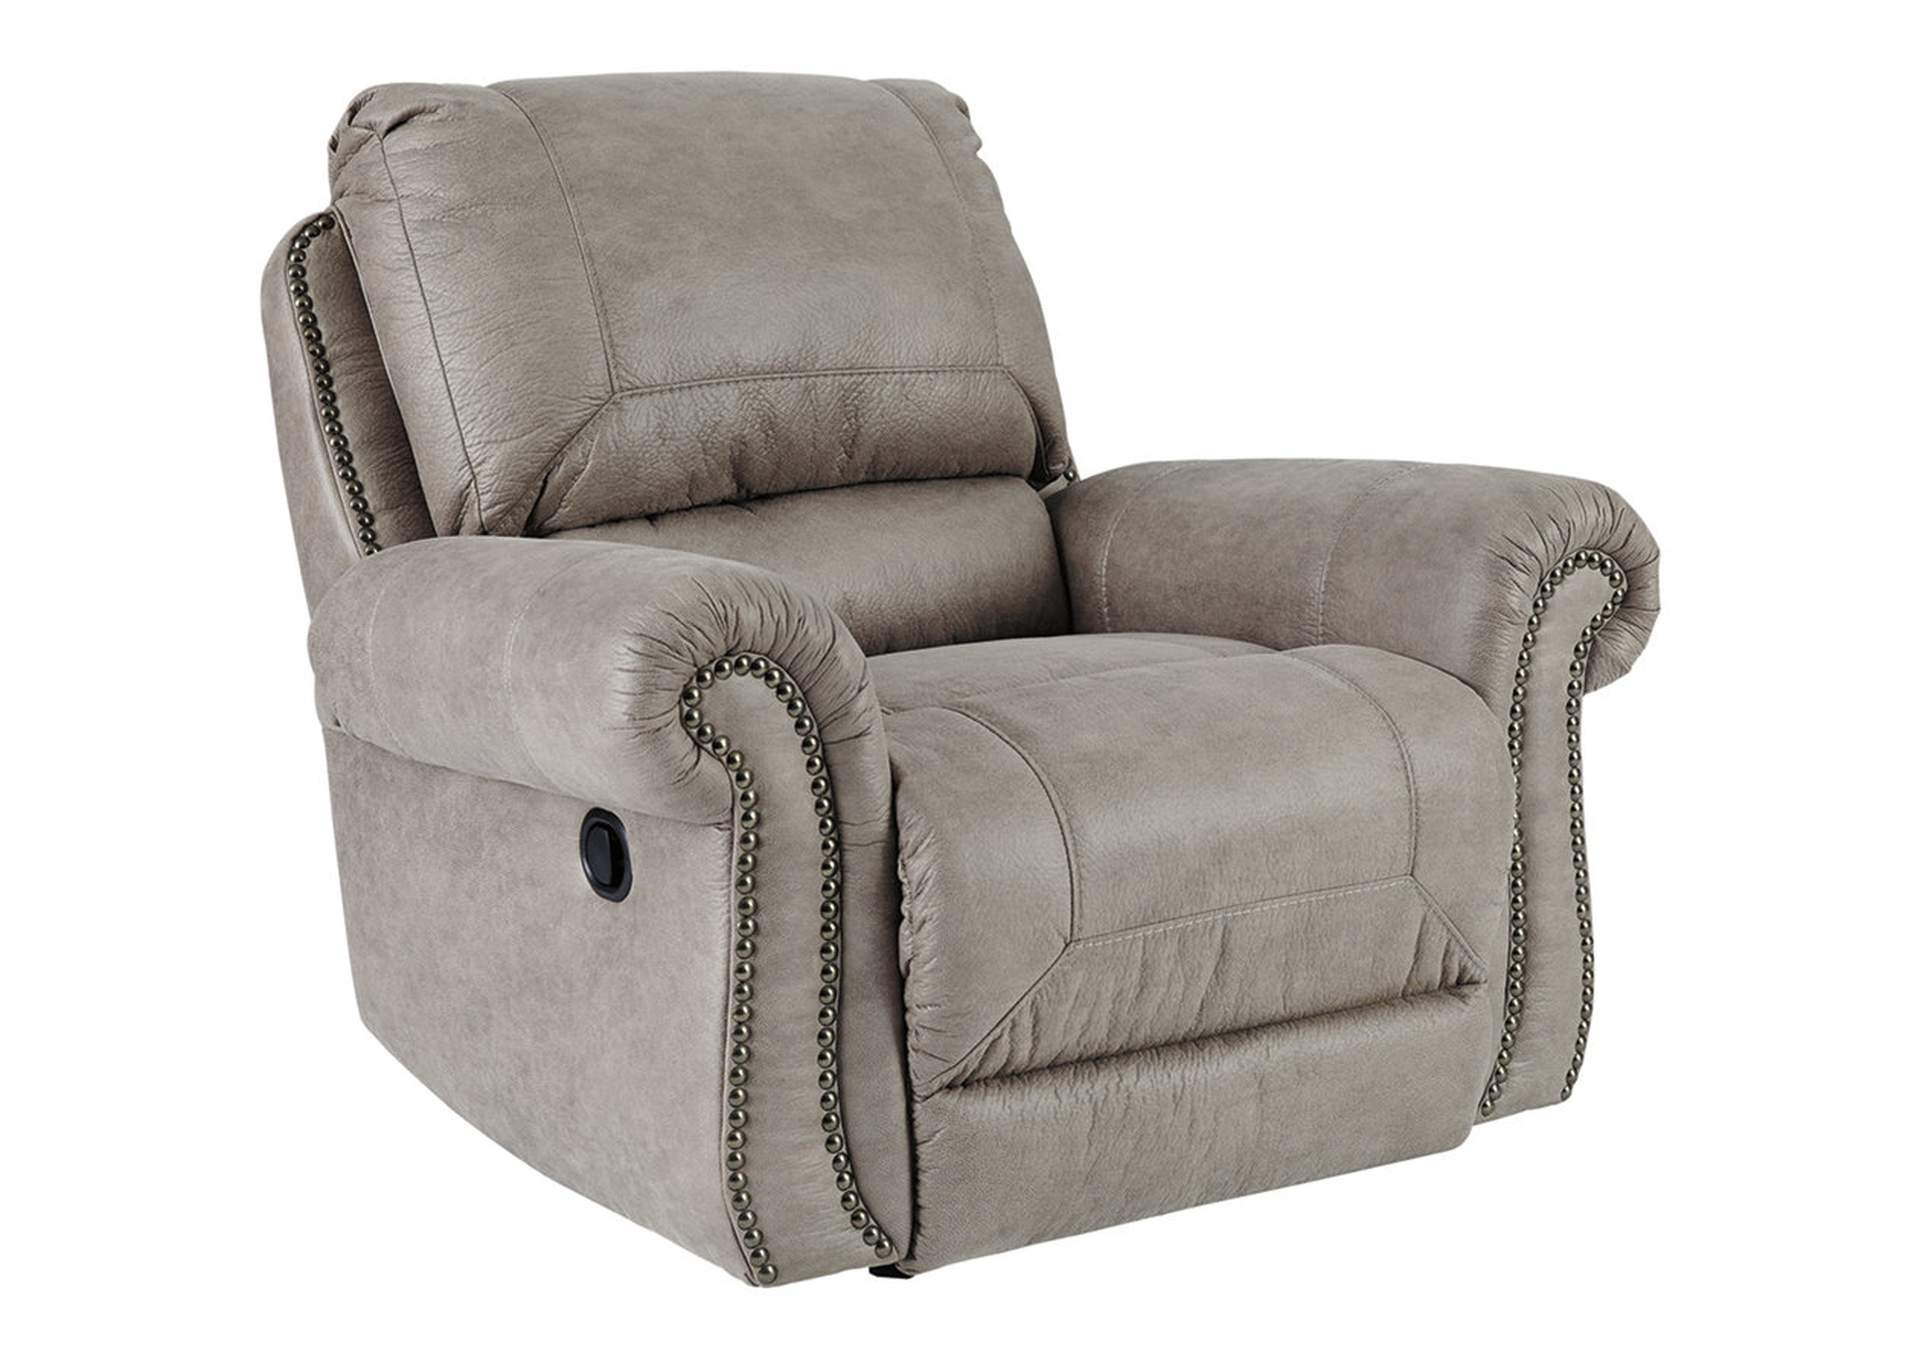 Olsberg Rocker Recliner,Signature Design By Ashley